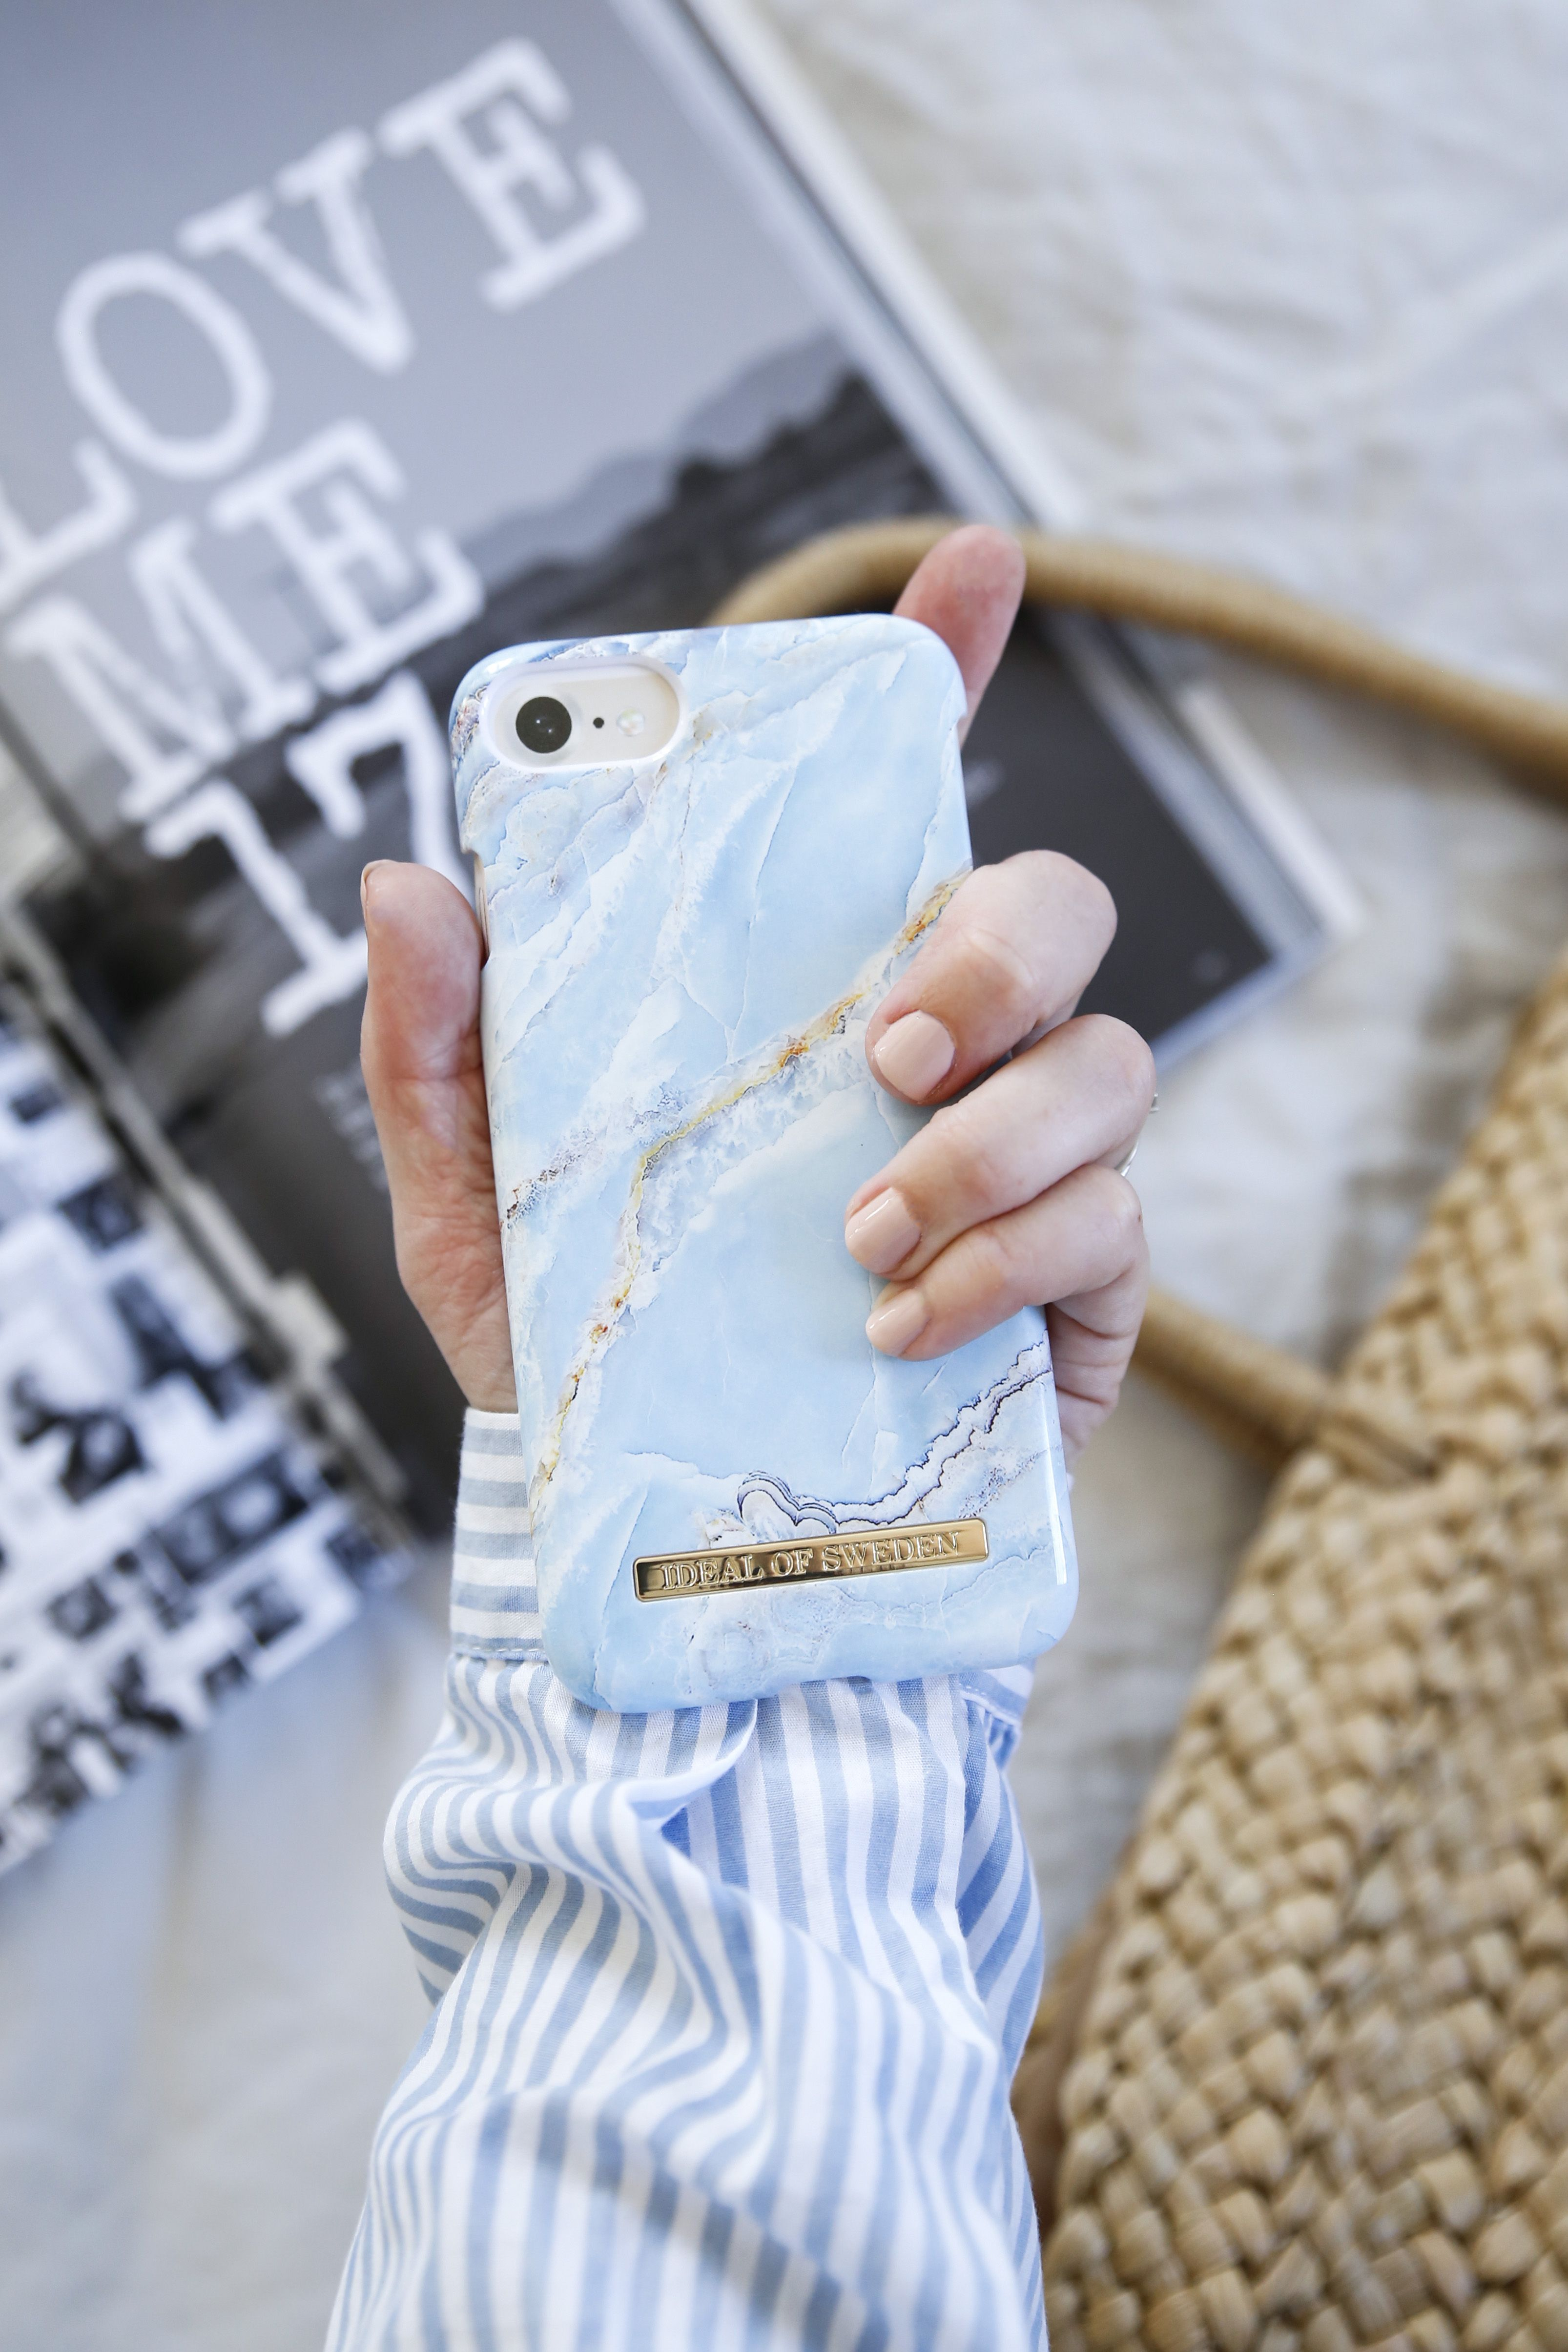 Island Paradise Marble by lovely  emmamelins - Fashion case phone cases  iphone inspiration iDeal of Sweden  marble  blue  gold  fashion  inspo   iphone   ... 368cf2f44bf33